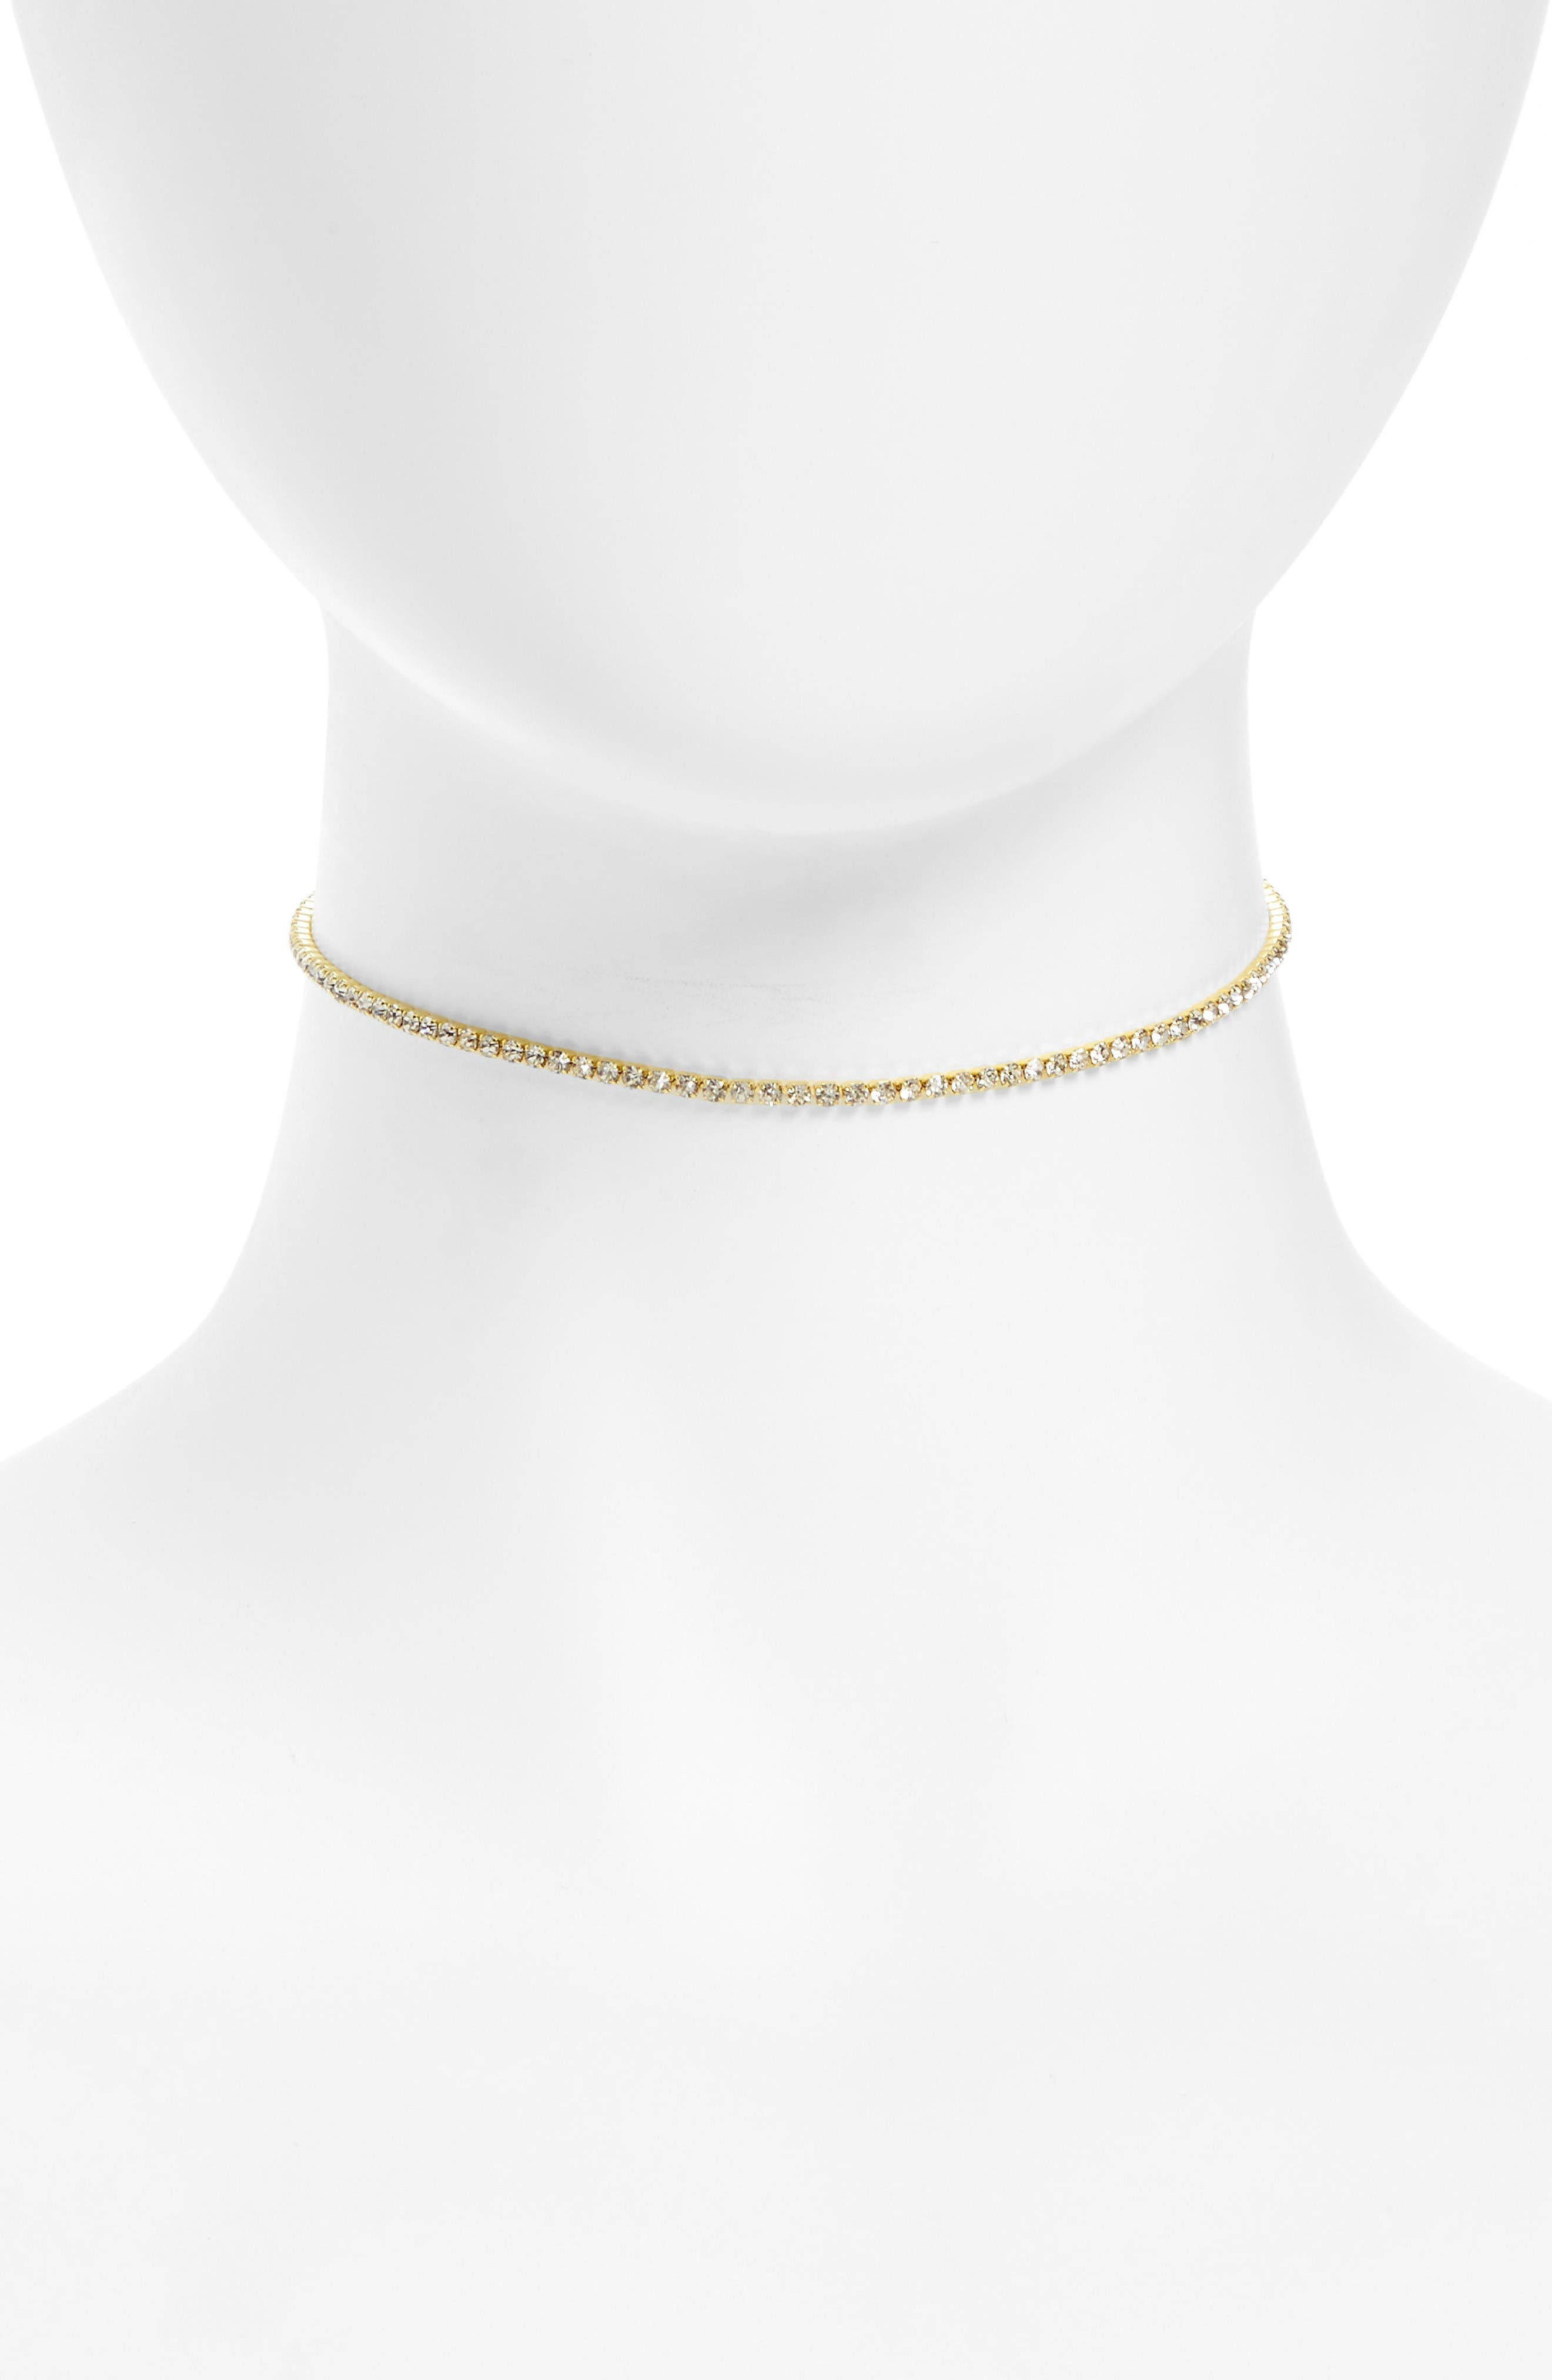 FRASIER STERLING If You Had My Love Choker